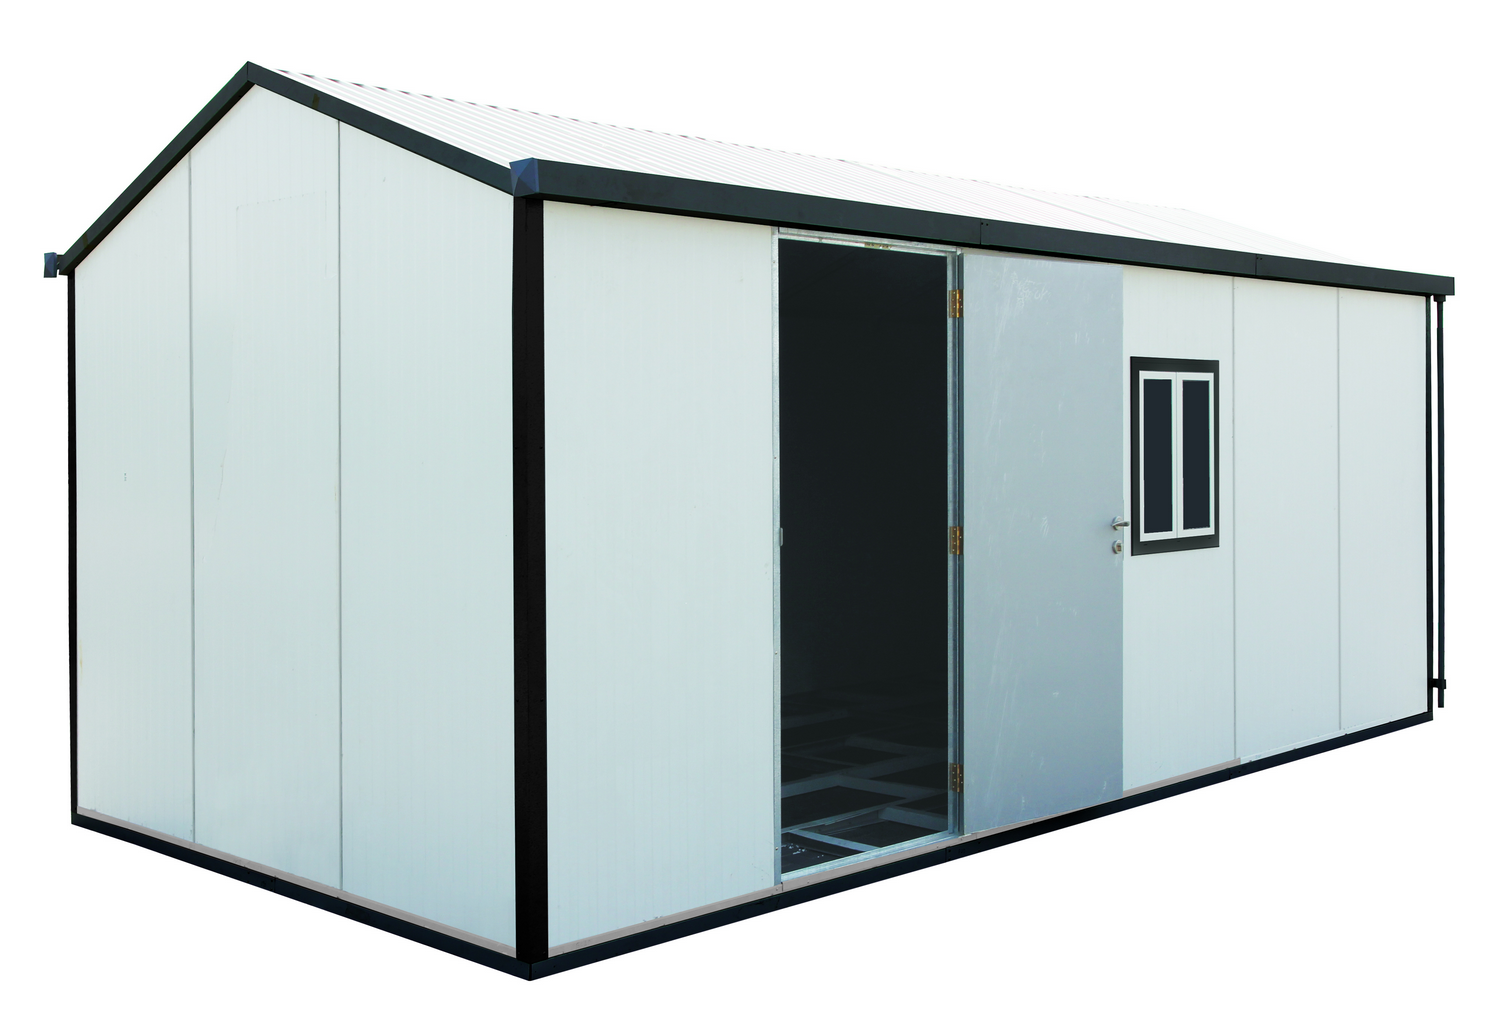 Duramax 30972 22' x 10' Gable Top Insulated Building